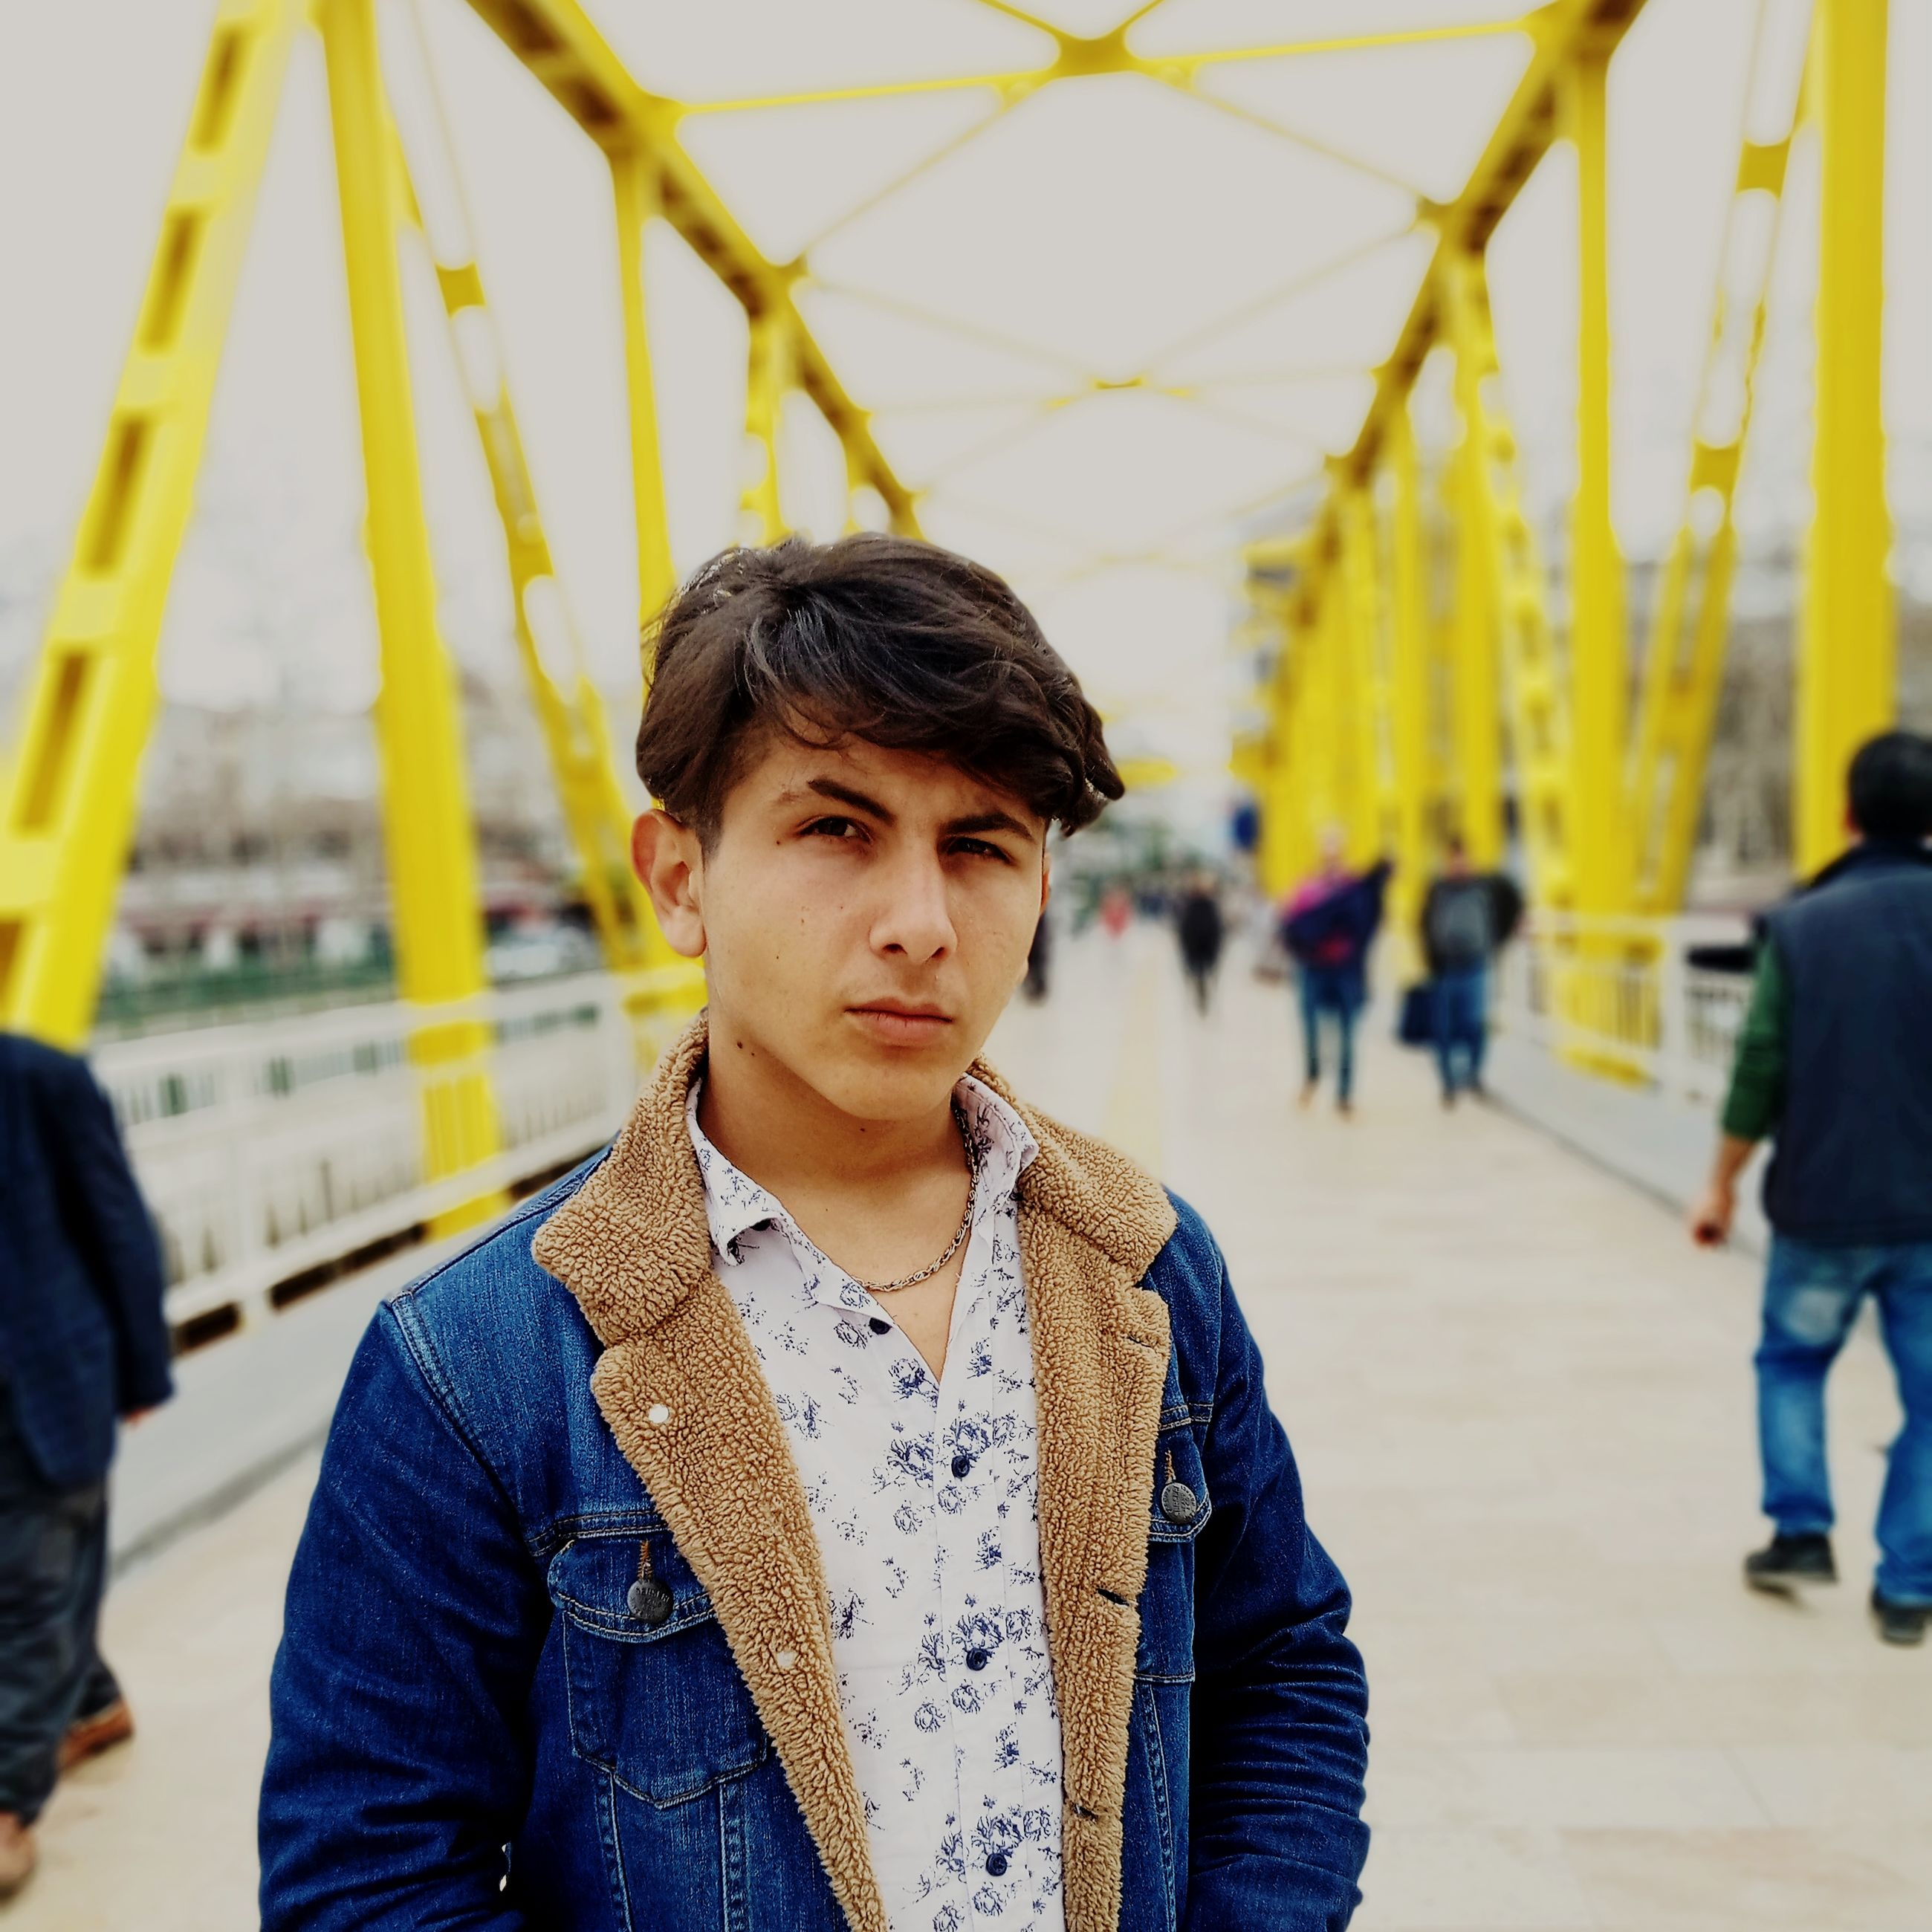 one person, young adult, portrait, focus on foreground, young men, real people, front view, looking at camera, leisure activity, casual clothing, clothing, incidental people, lifestyles, standing, jacket, handsome, architecture, day, yellow, outdoors, scarf, hairstyle